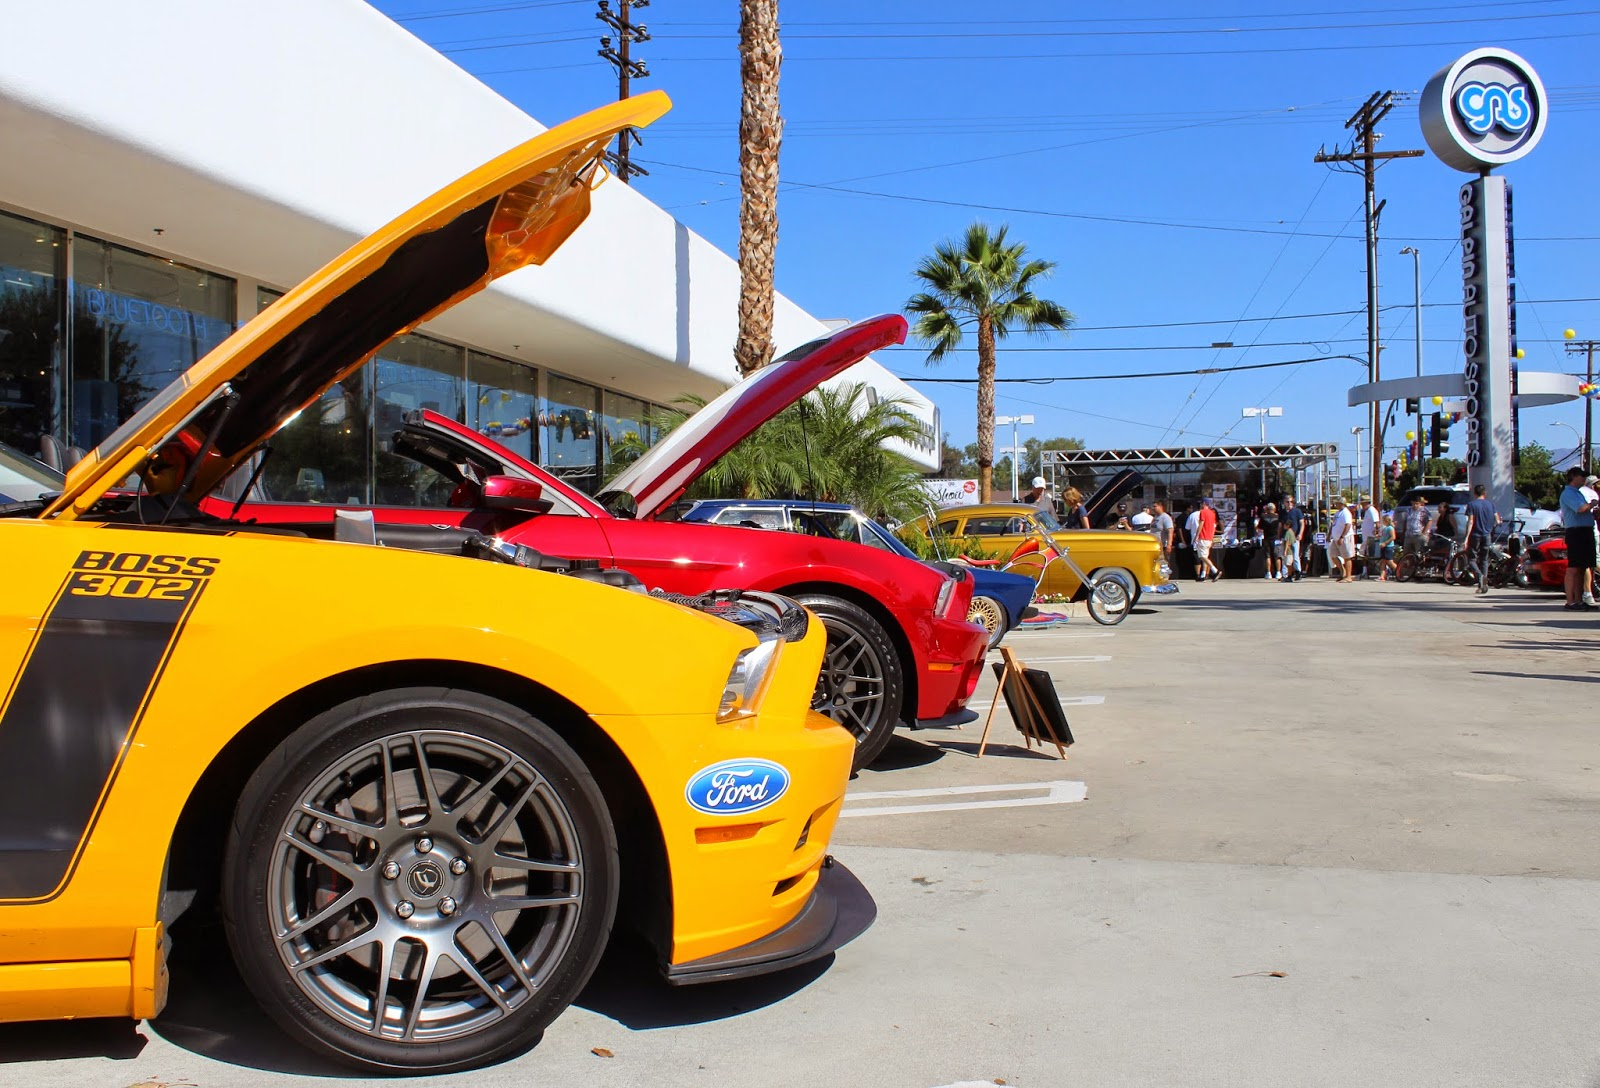 Covering Classic Cars Rd Annual Galpin Ford Custom Car Show - Galpin ford car show